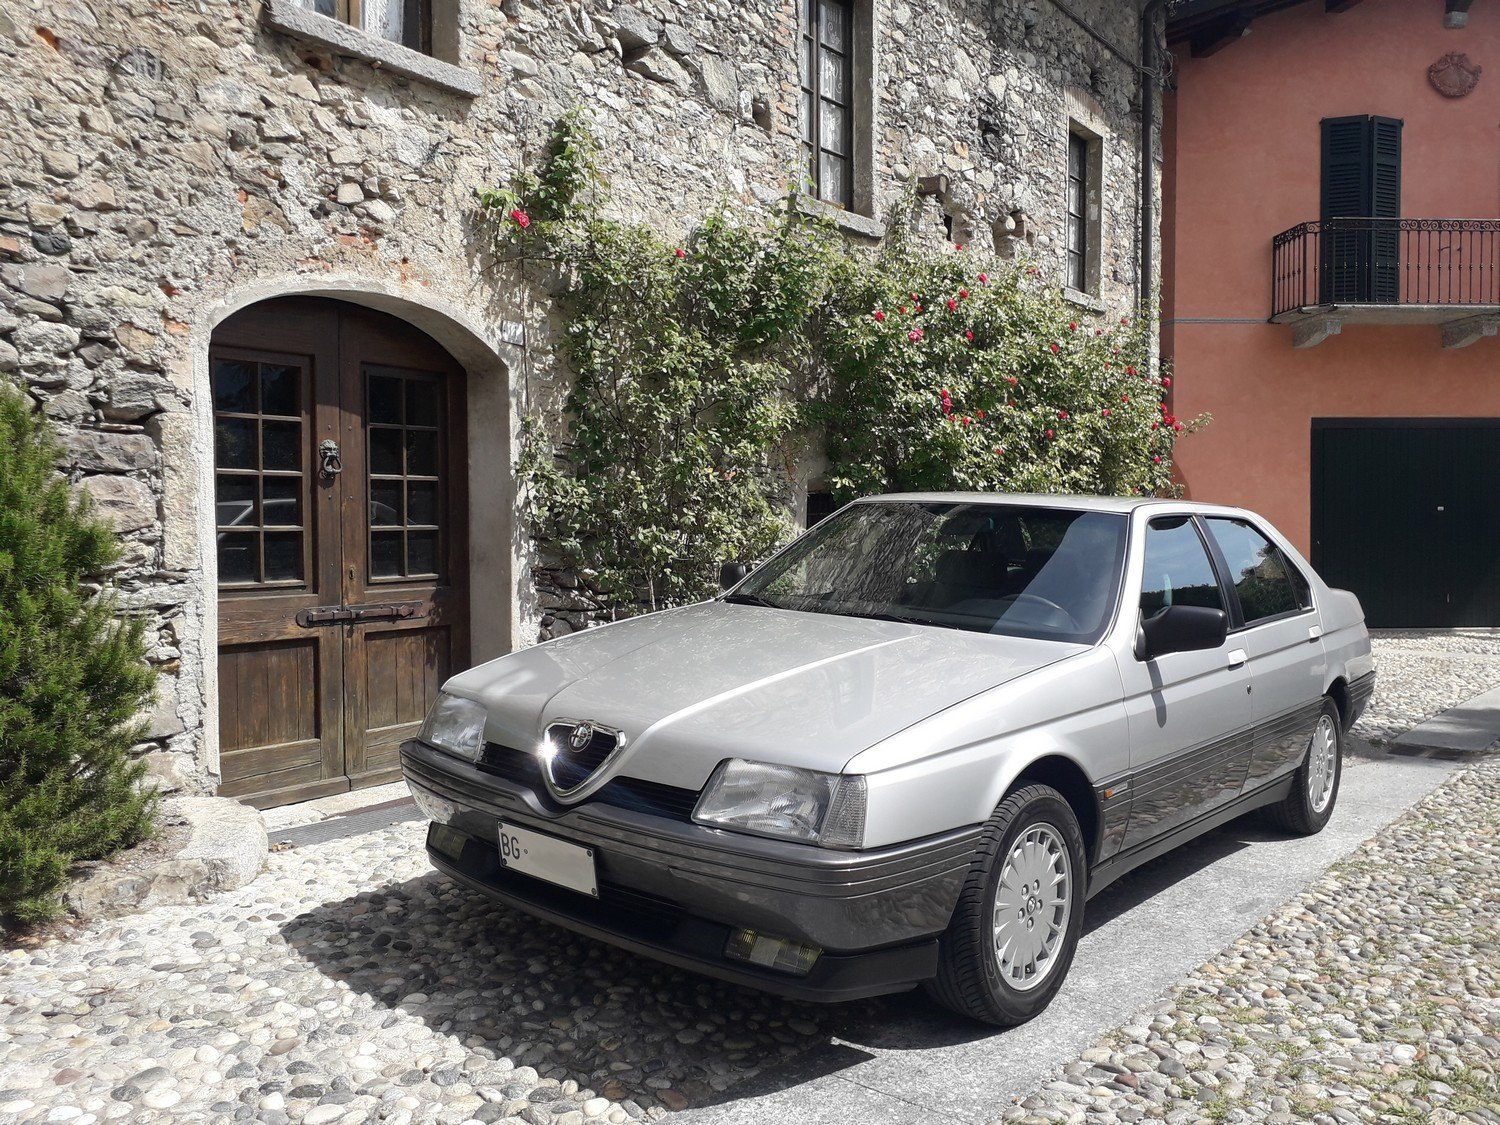 1988 As new alfa 164 3.0 V6 with 64 k km! For Sale (picture 2 of 6)